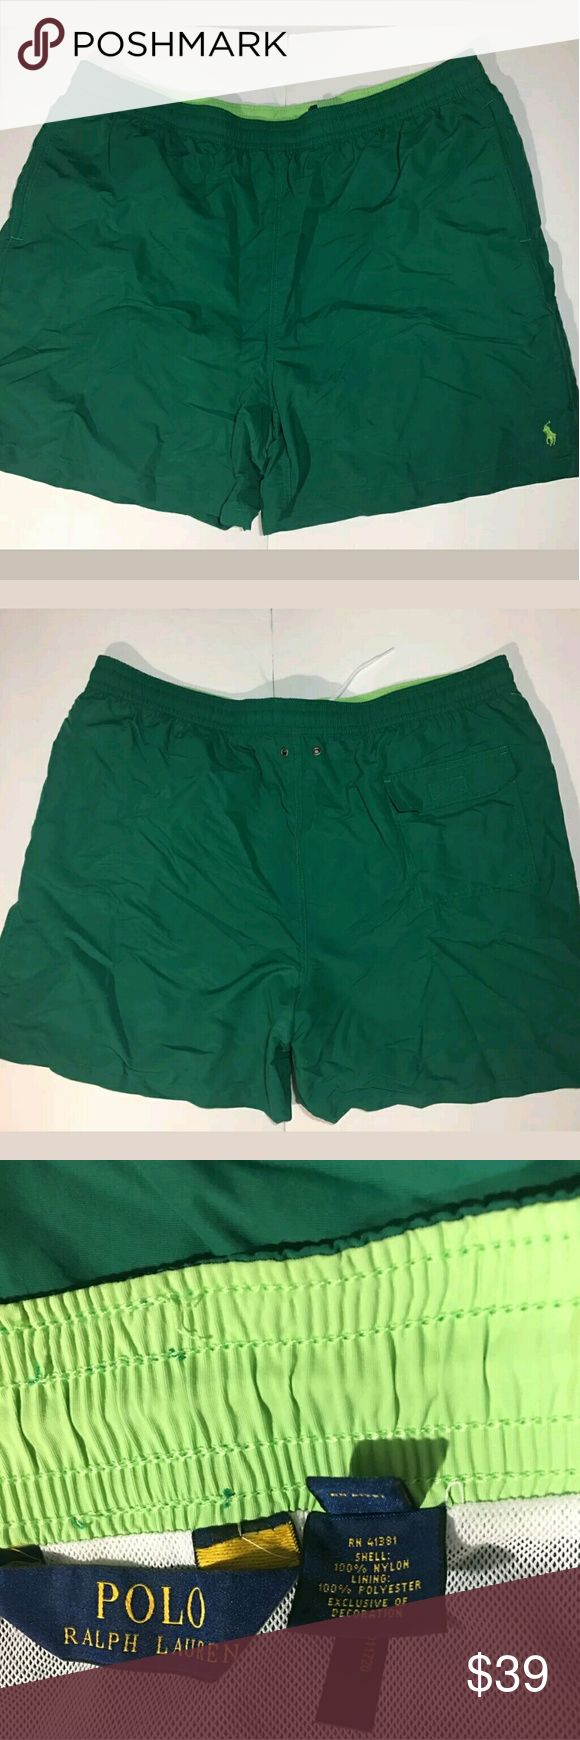 Ralph Lauren Polo Swim Shorts Drawstring Waist Ralph Lauren Polo Swim Shorts Drawstring Waist Green 3XBig.   Excellent used condition. Pockets   42 waist plus stretch.  6 inch inseam.  20.5 inch outseam.   AB Polo by Ralph Lauren Shorts